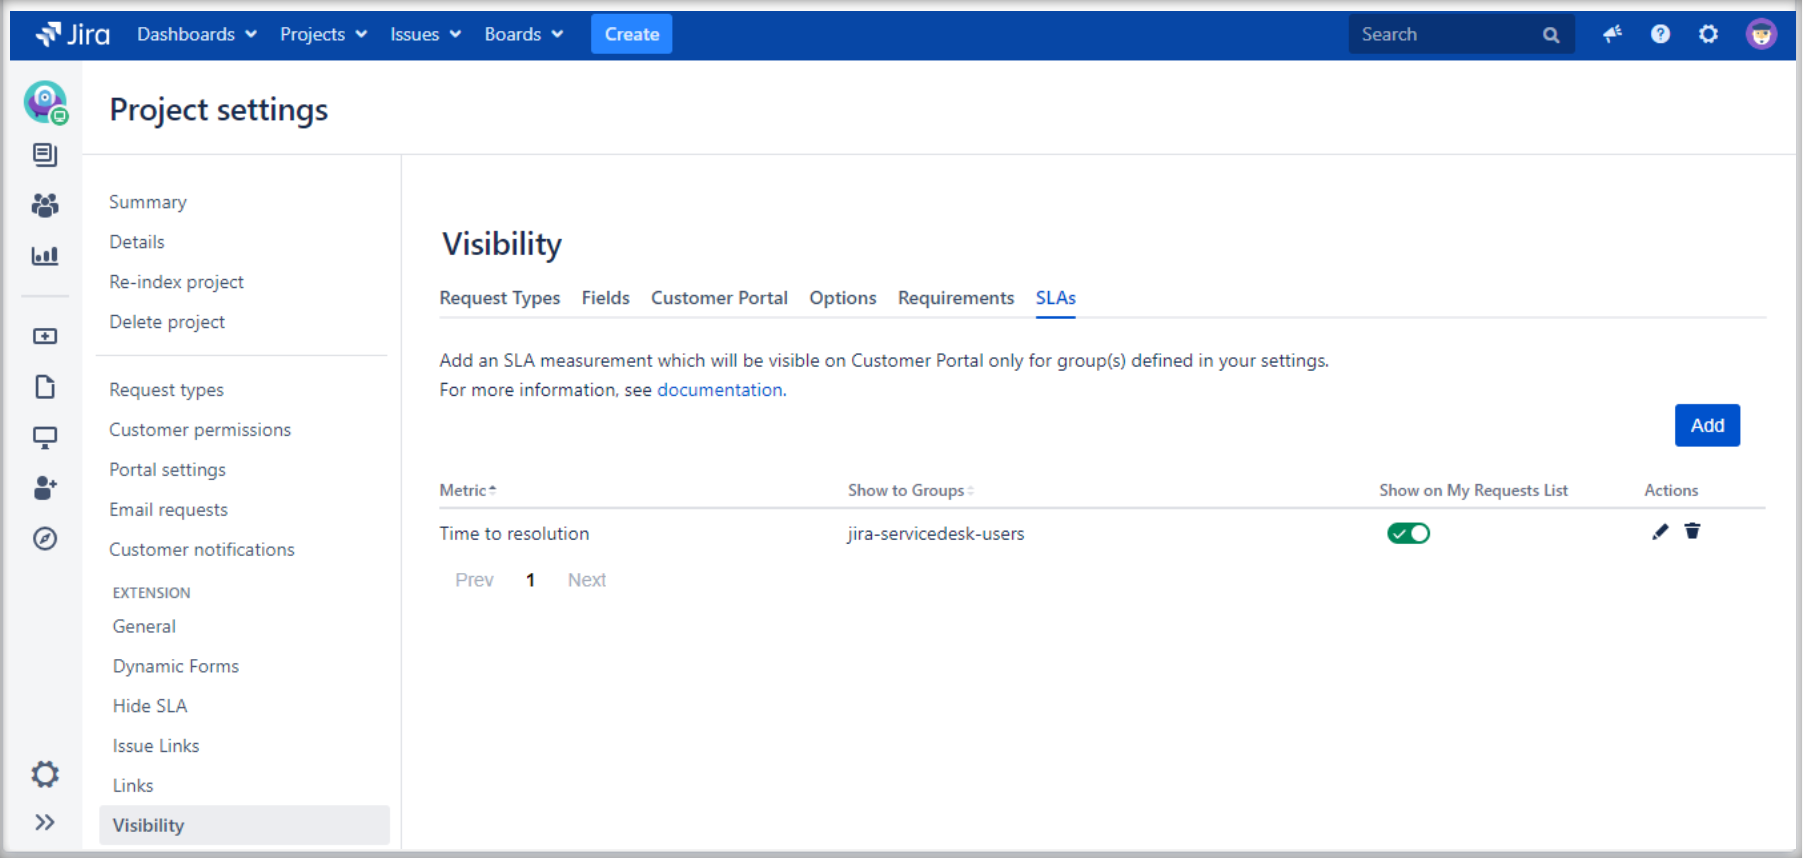 Setting SLAs visibility with Extension for Jira Service Management on My Requests List on the Customer Portal by adding a configuration to the list